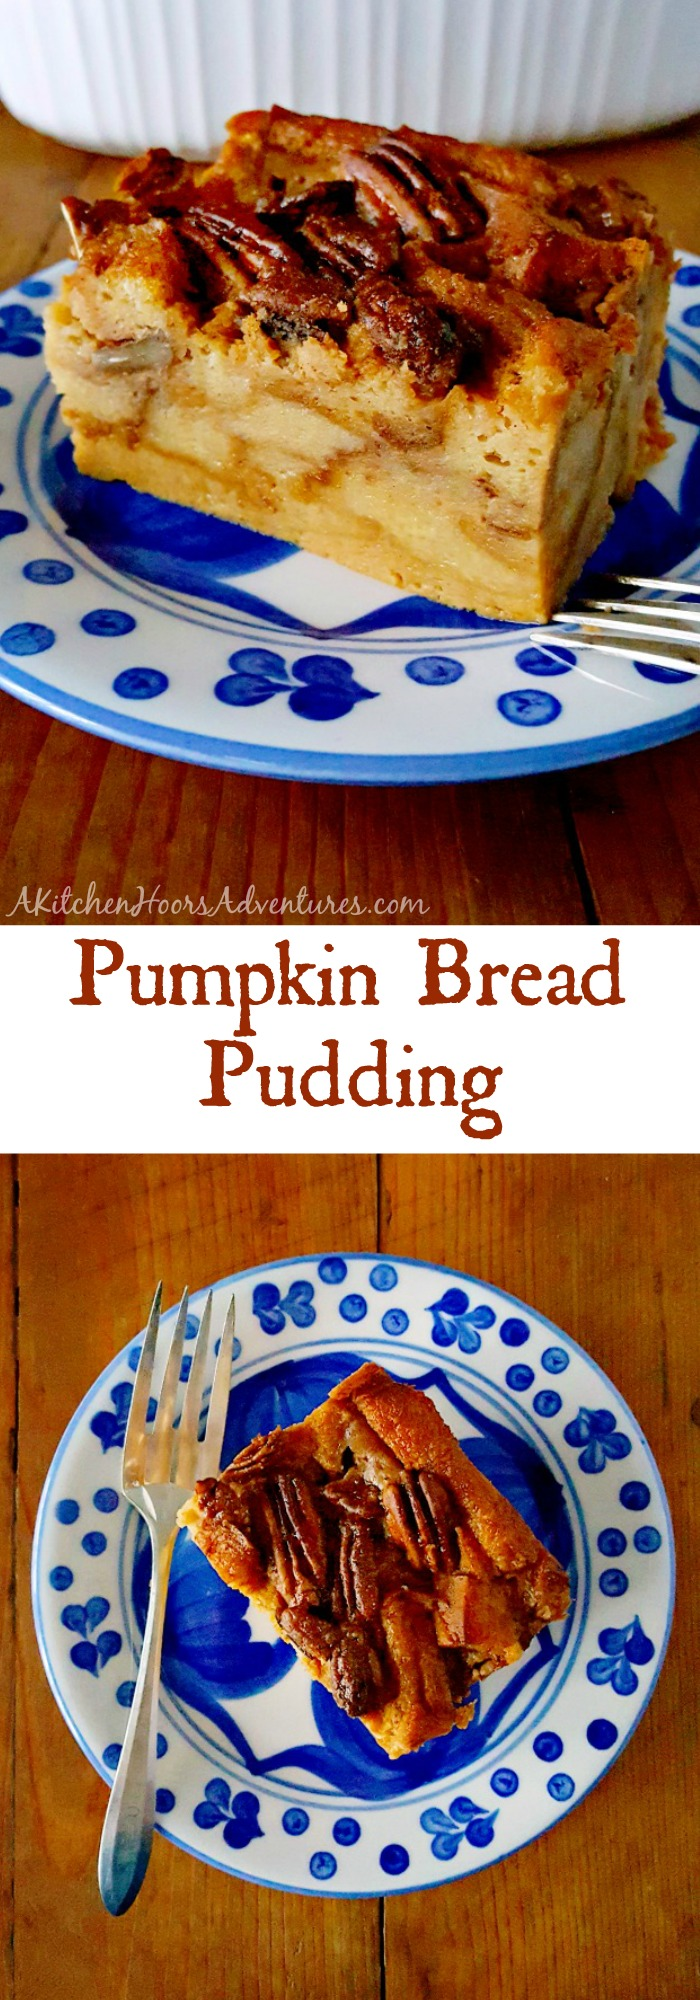 Baked donuts turned bread pudding, this Pumpkin Bread Pudding is fall in a pan with pockets of caramel bits and crunchy pecans on top! Perfect ending to #PumpkinWeek.